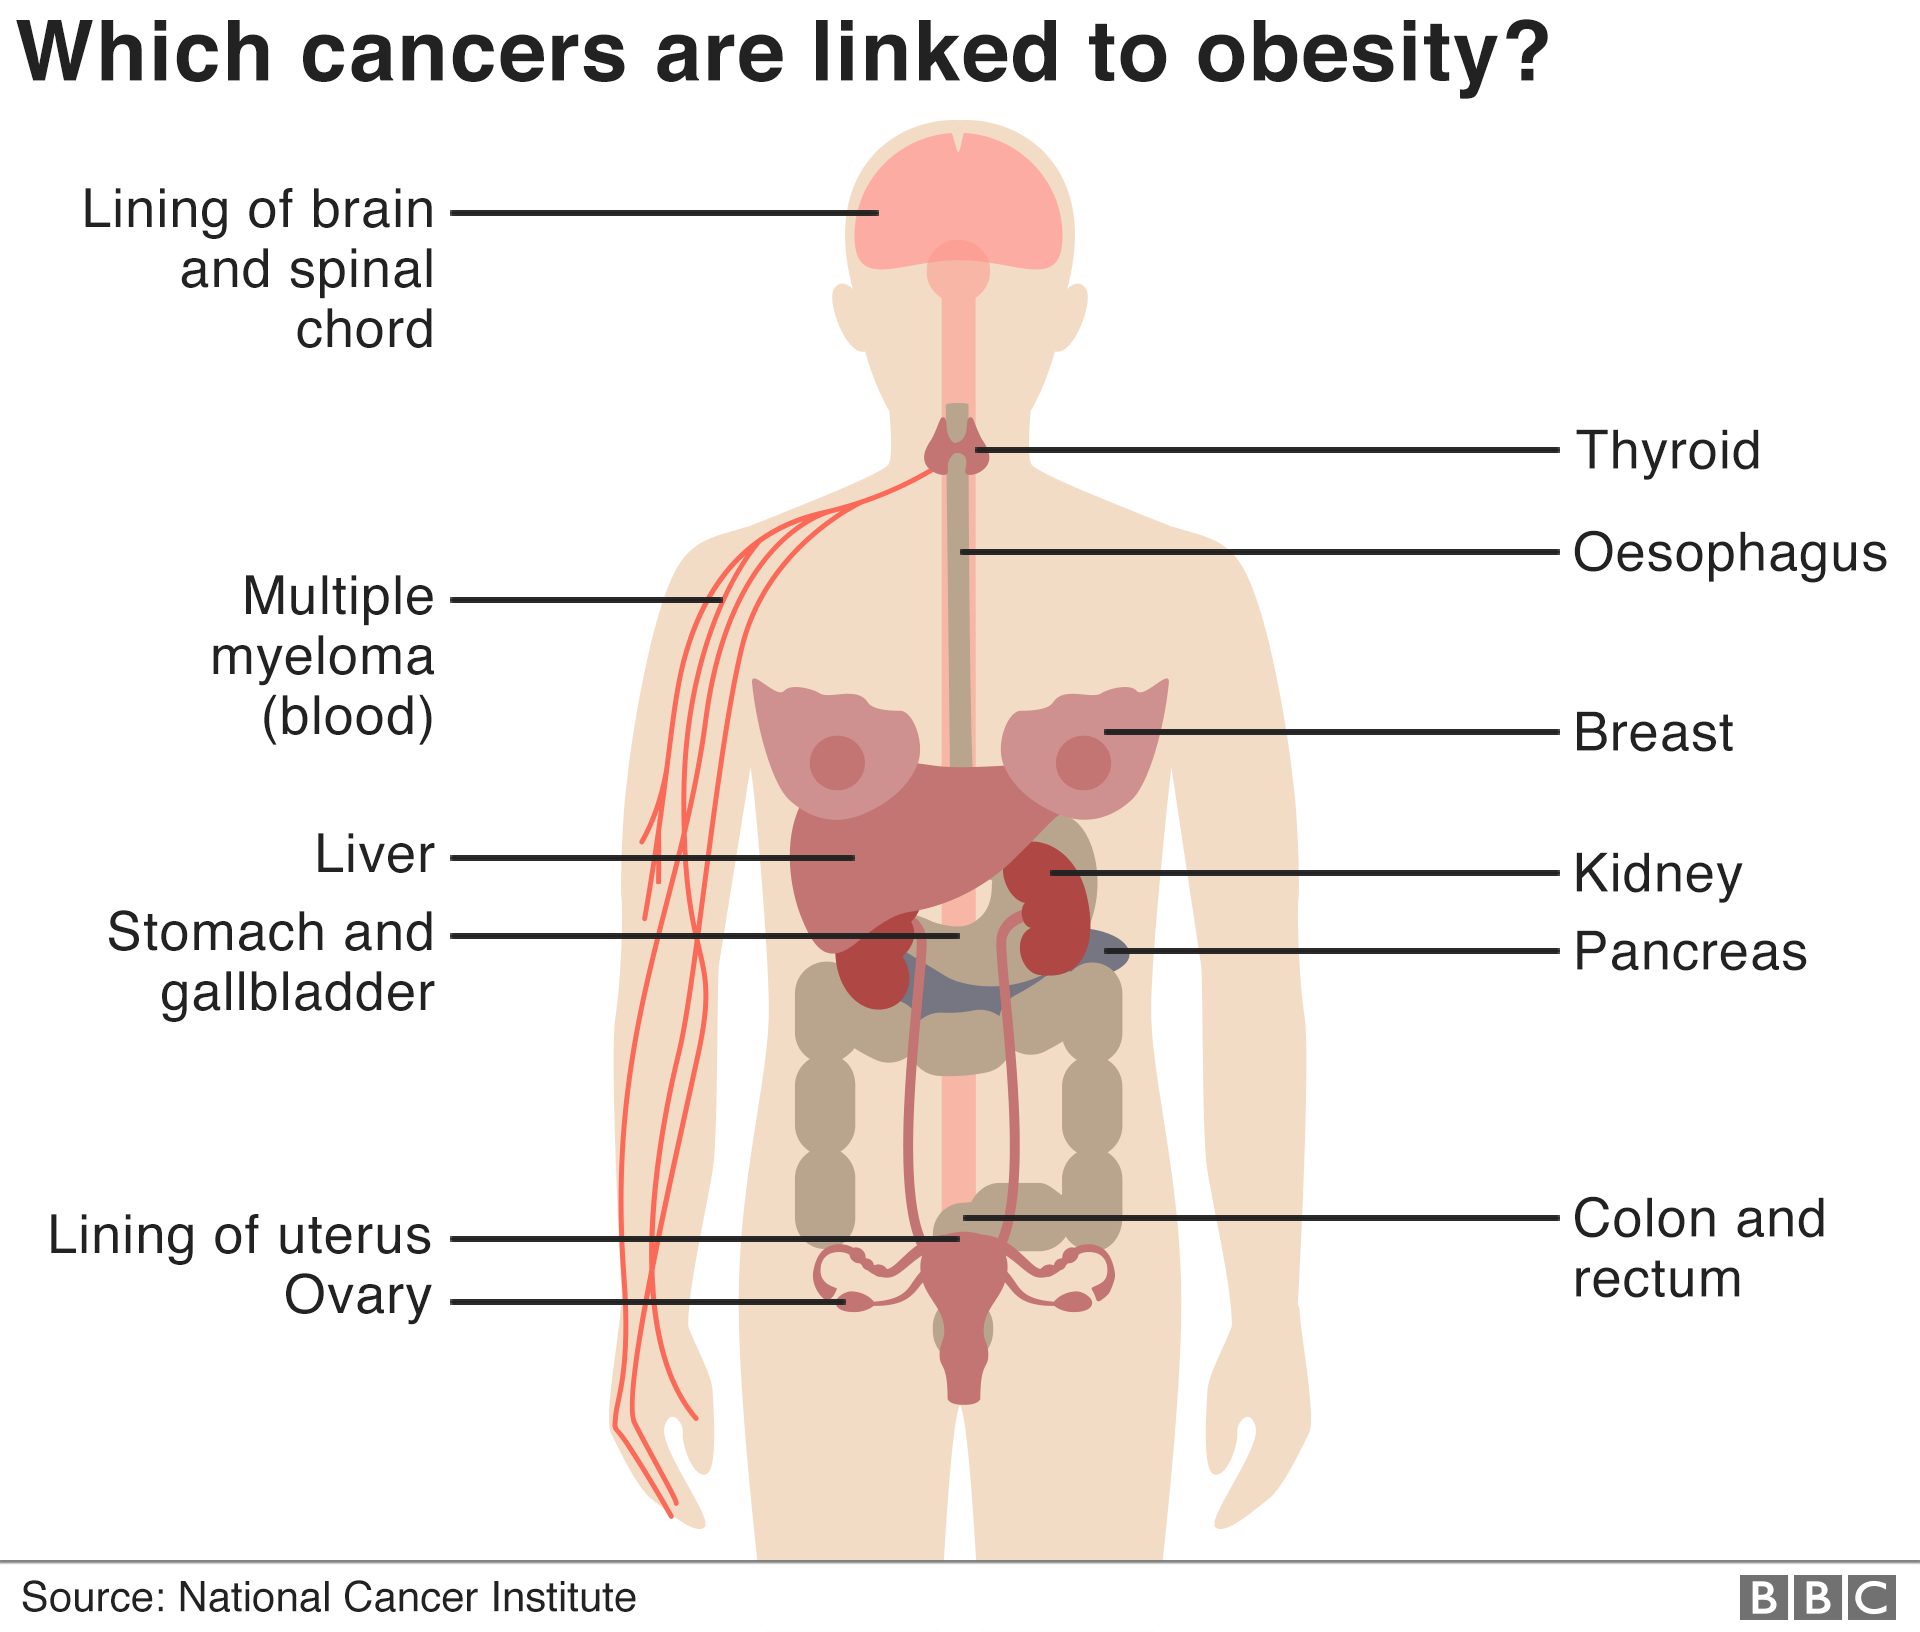 Infographic shows female human body and indicates parts of the body where obesity is linked to cancer